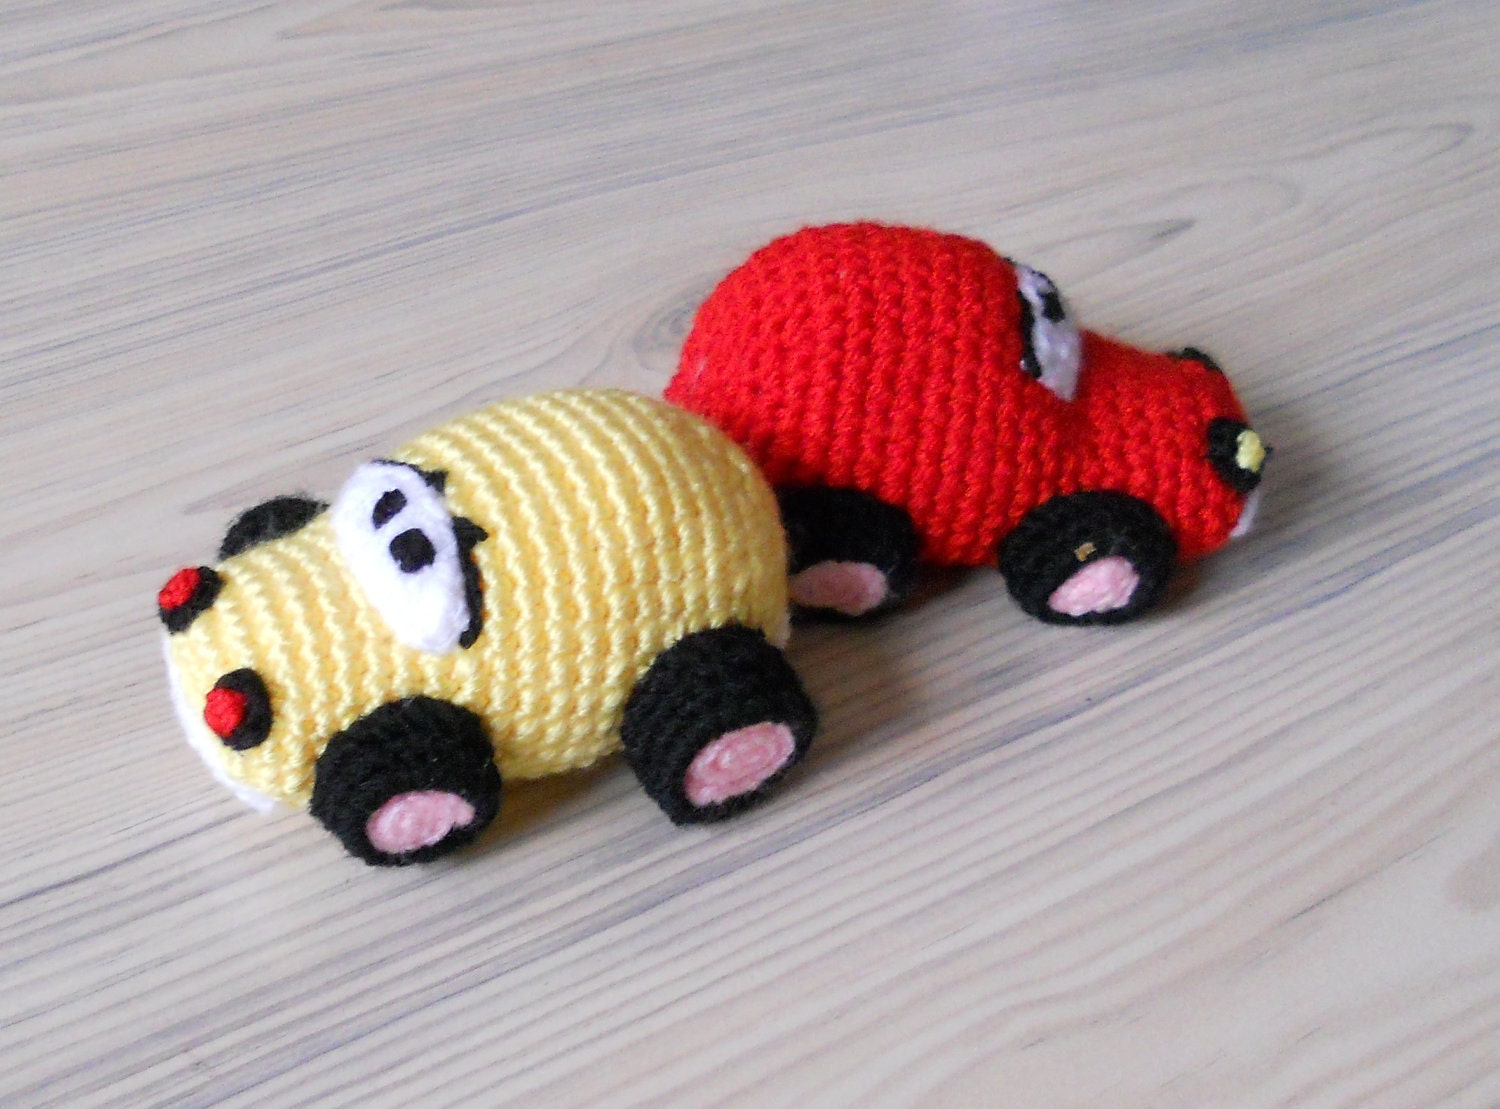 Crochet Toys : Crochet car baby toys red car yellow car baby by jelenateperik